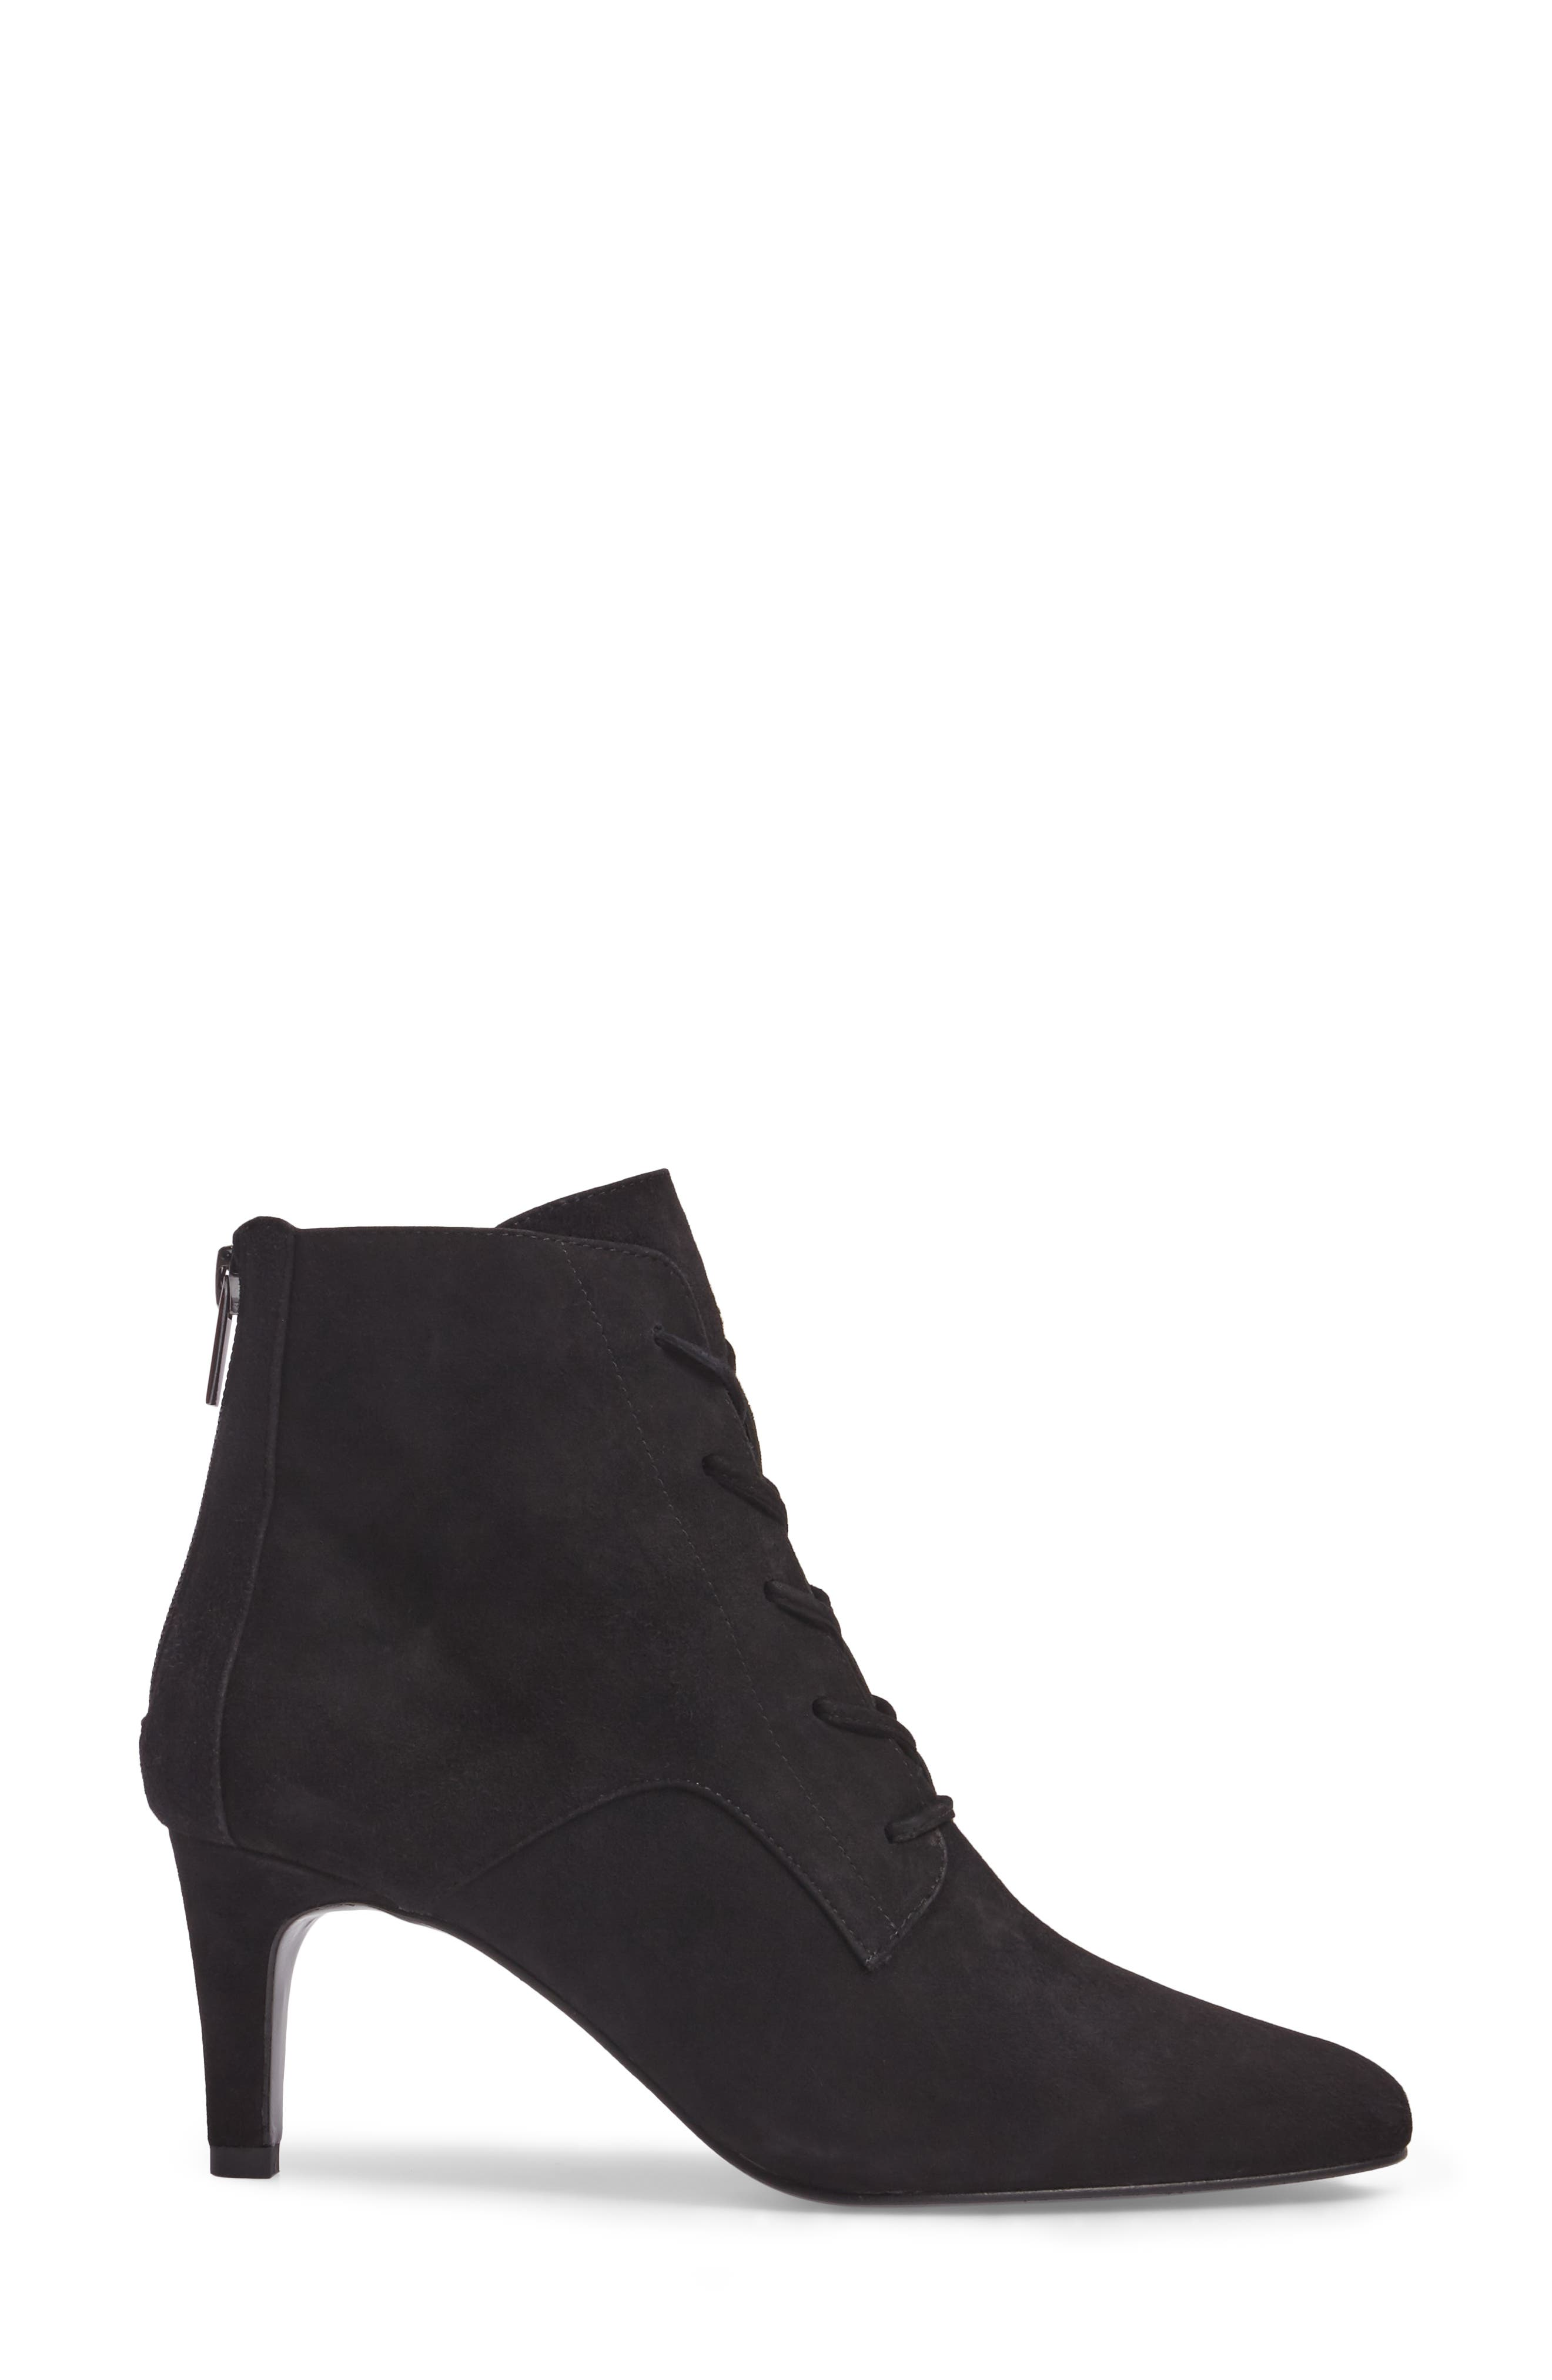 Yelen Bootie,                             Alternate thumbnail 3, color,                             Black Leather